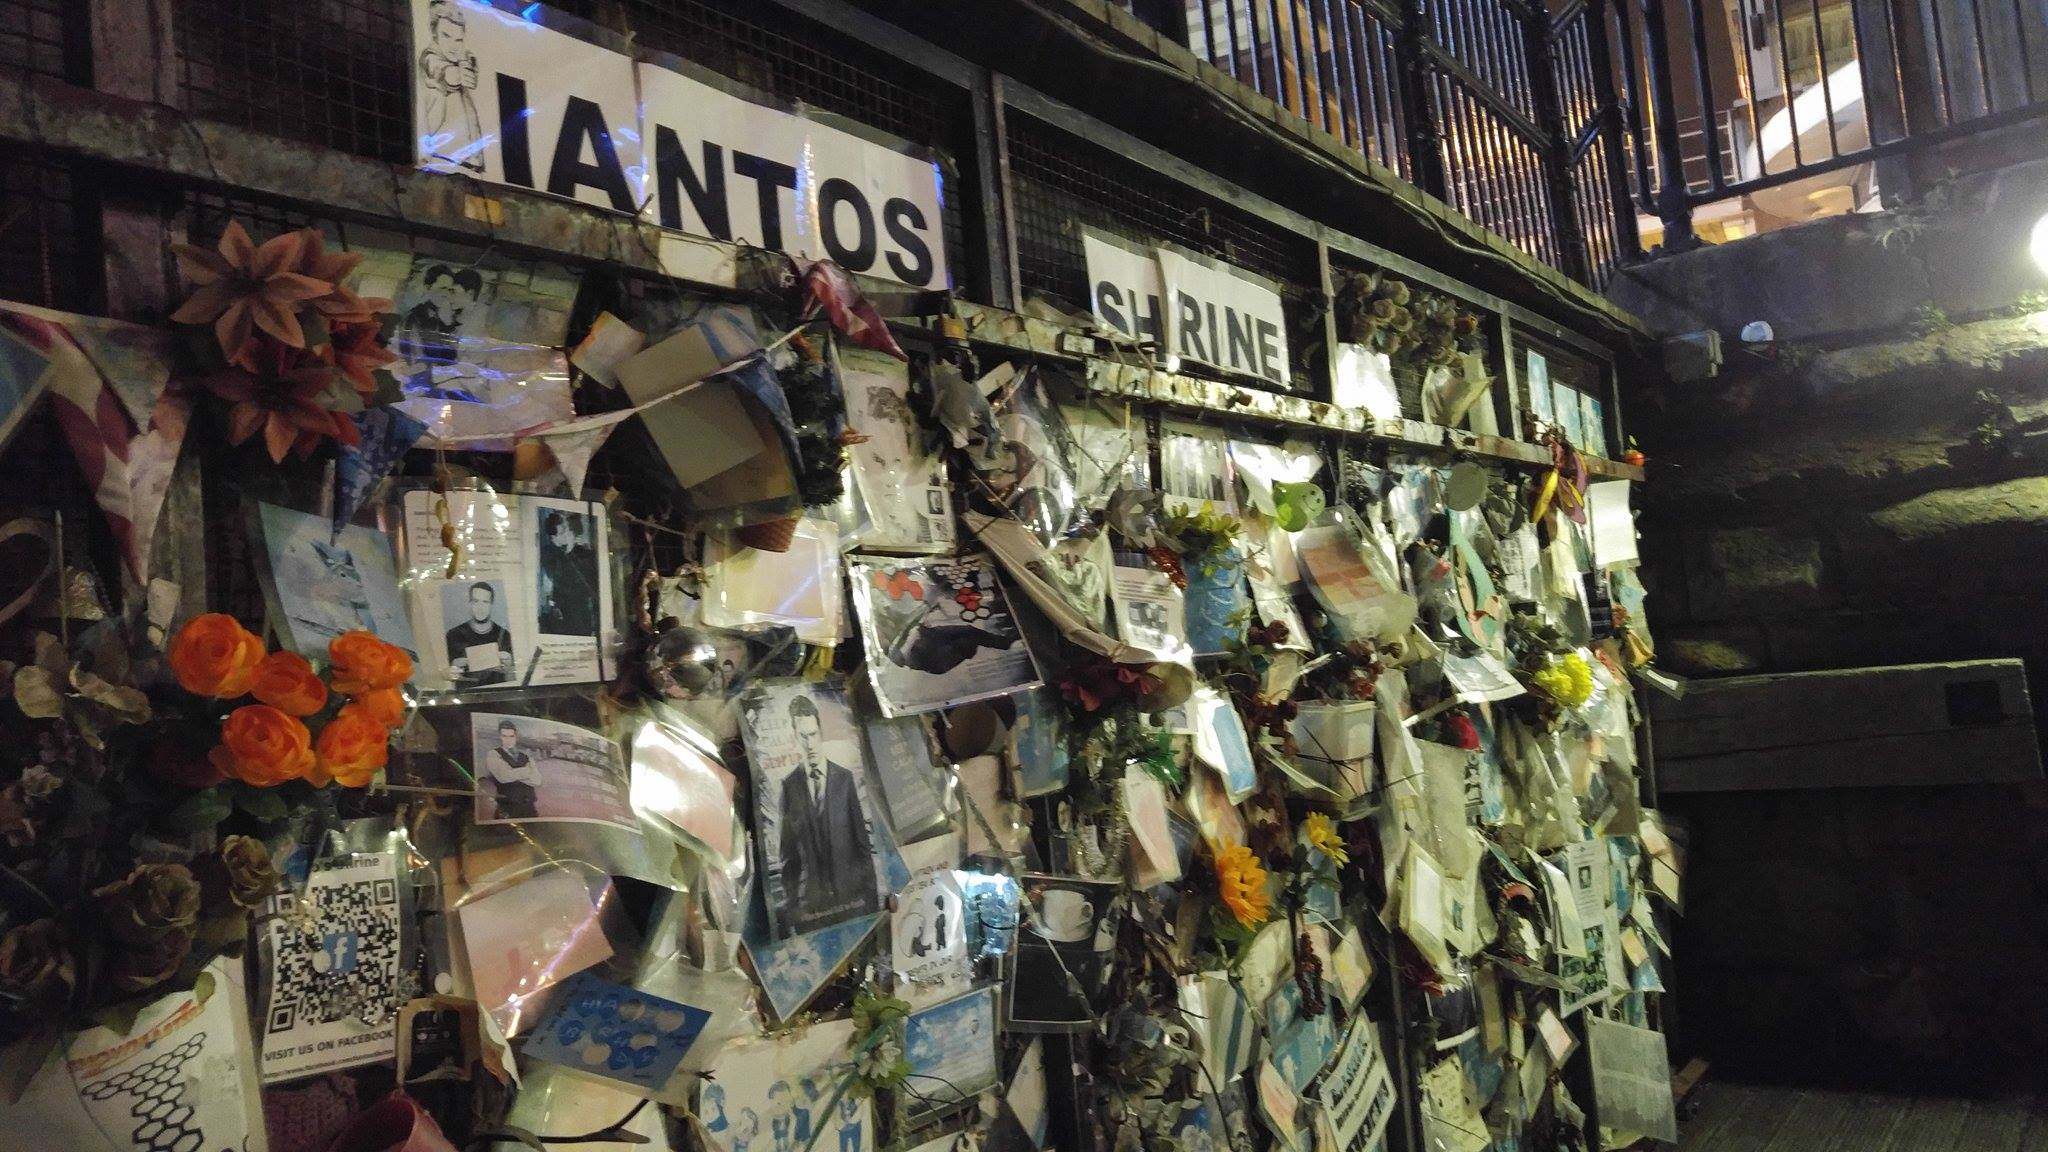 Ianto's Shrine Torchwood Cardiff